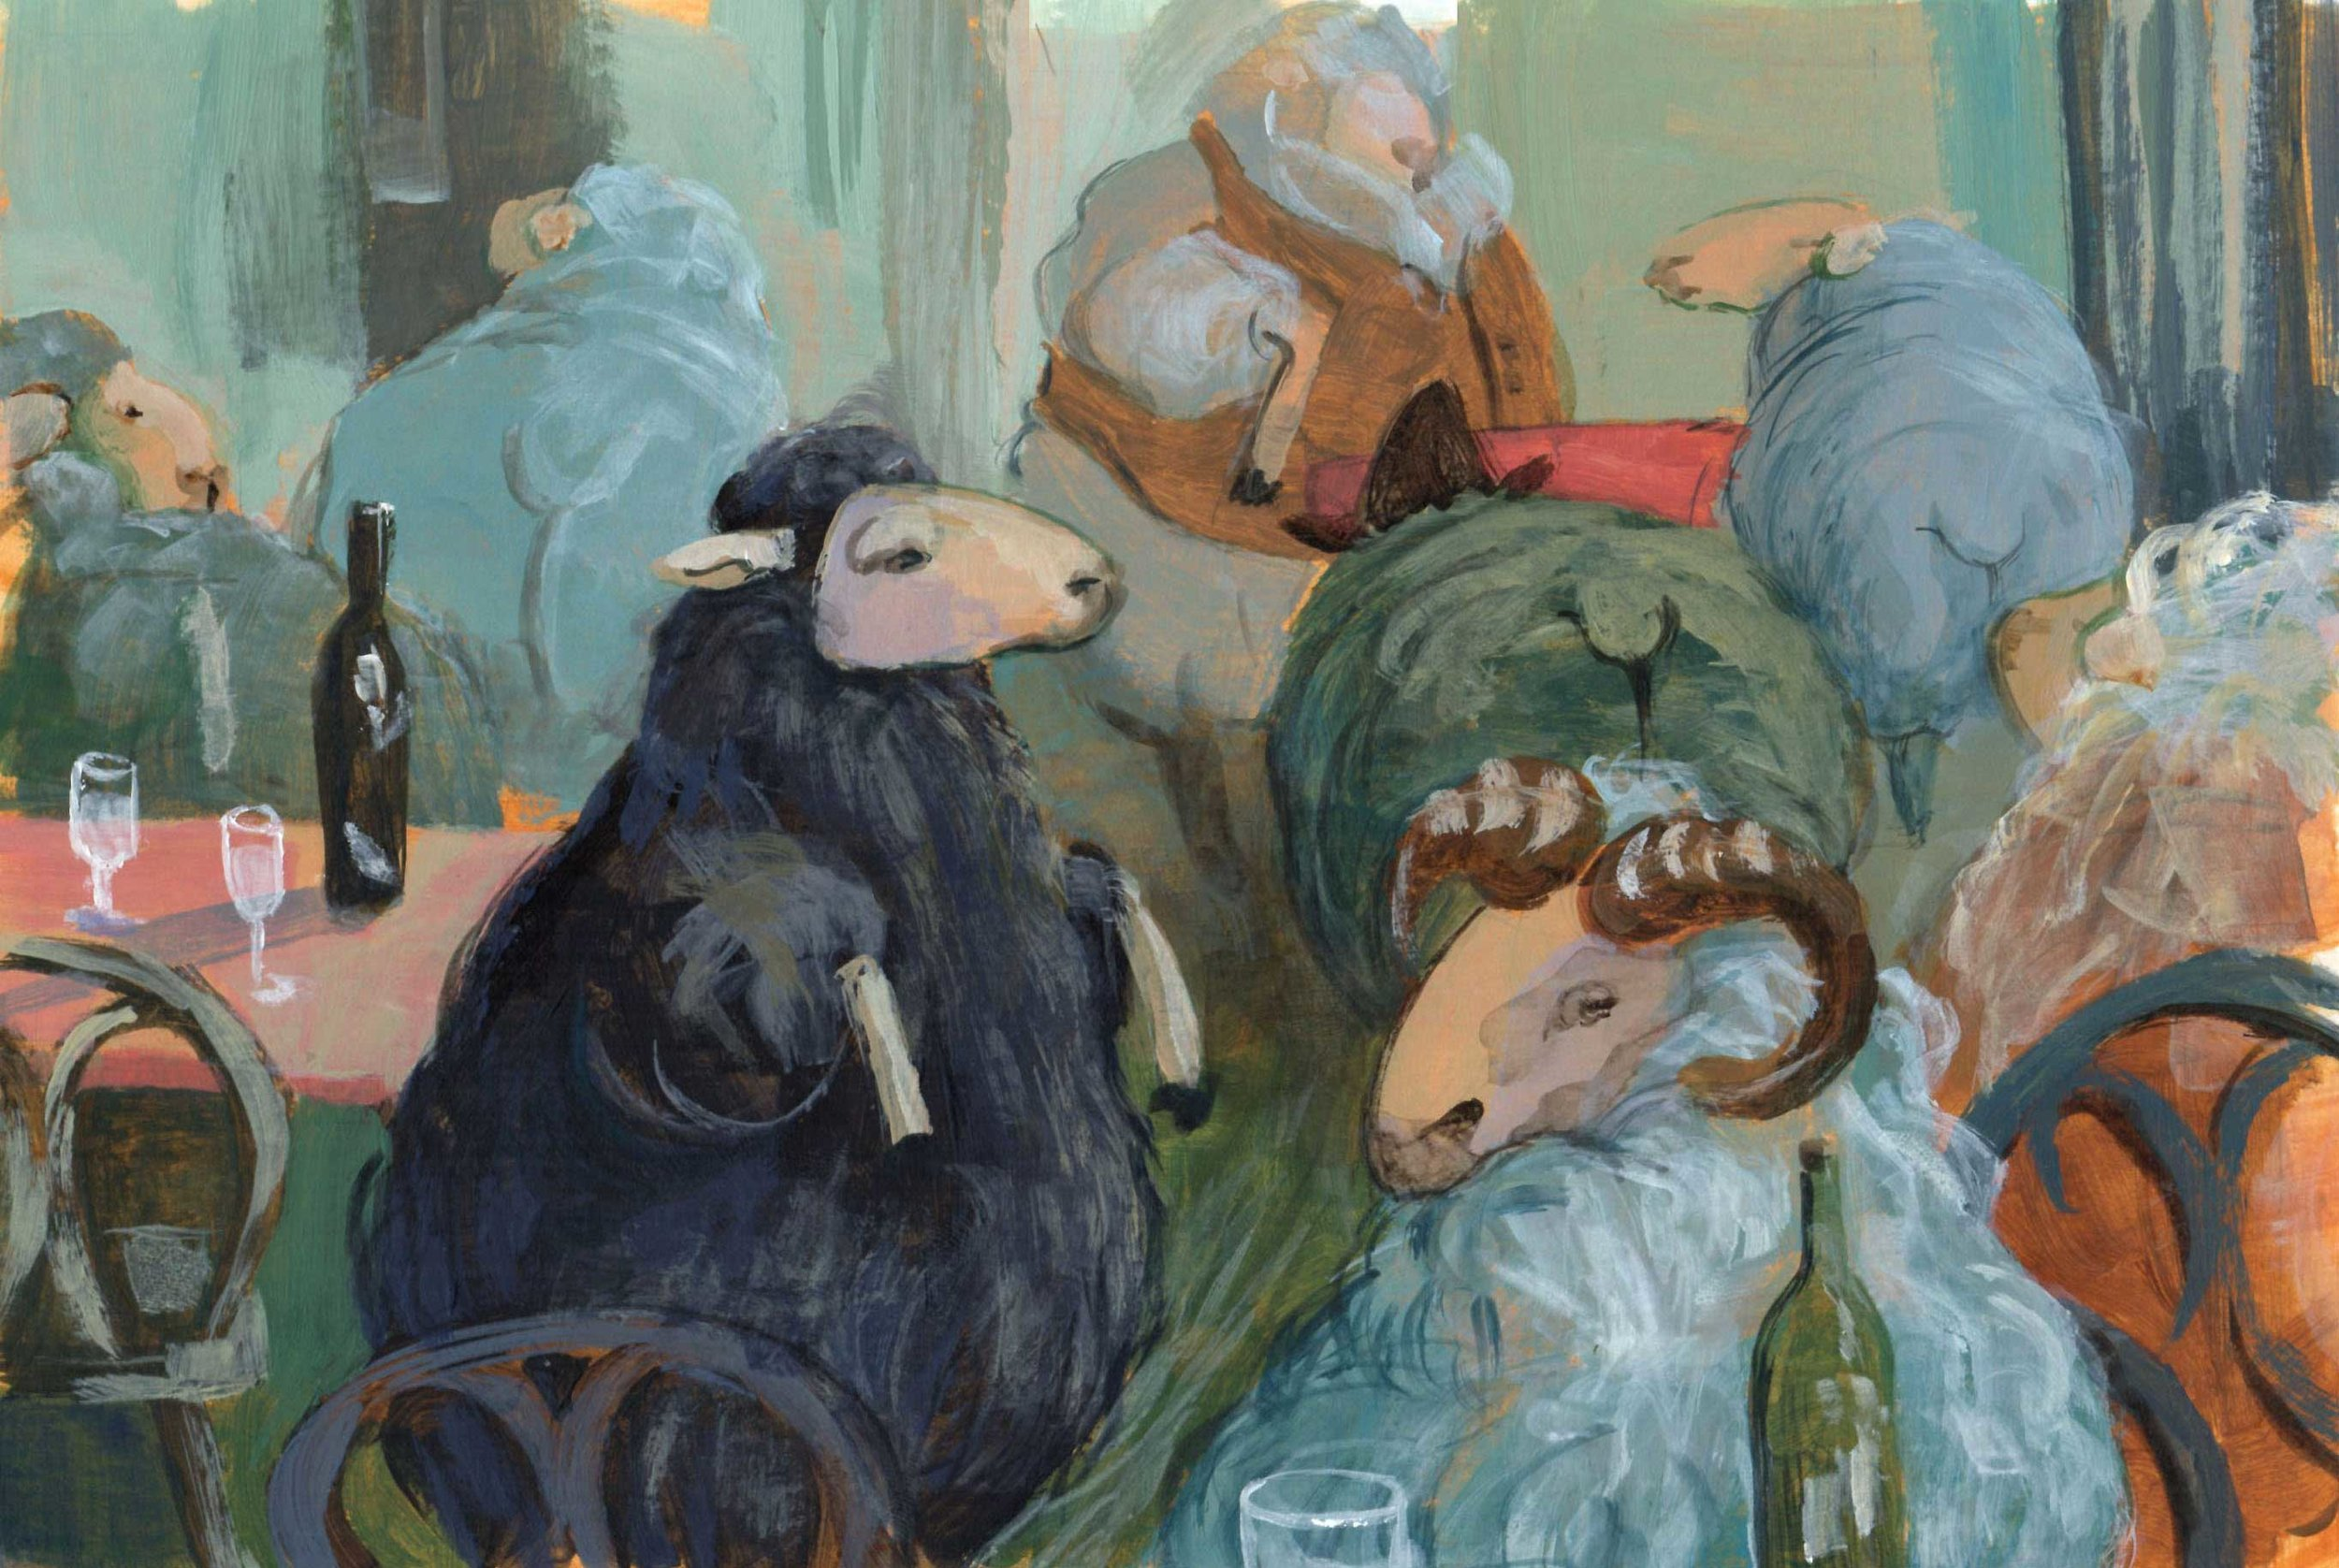 Sheep Bar, Priscilla Tey, Illustration Art